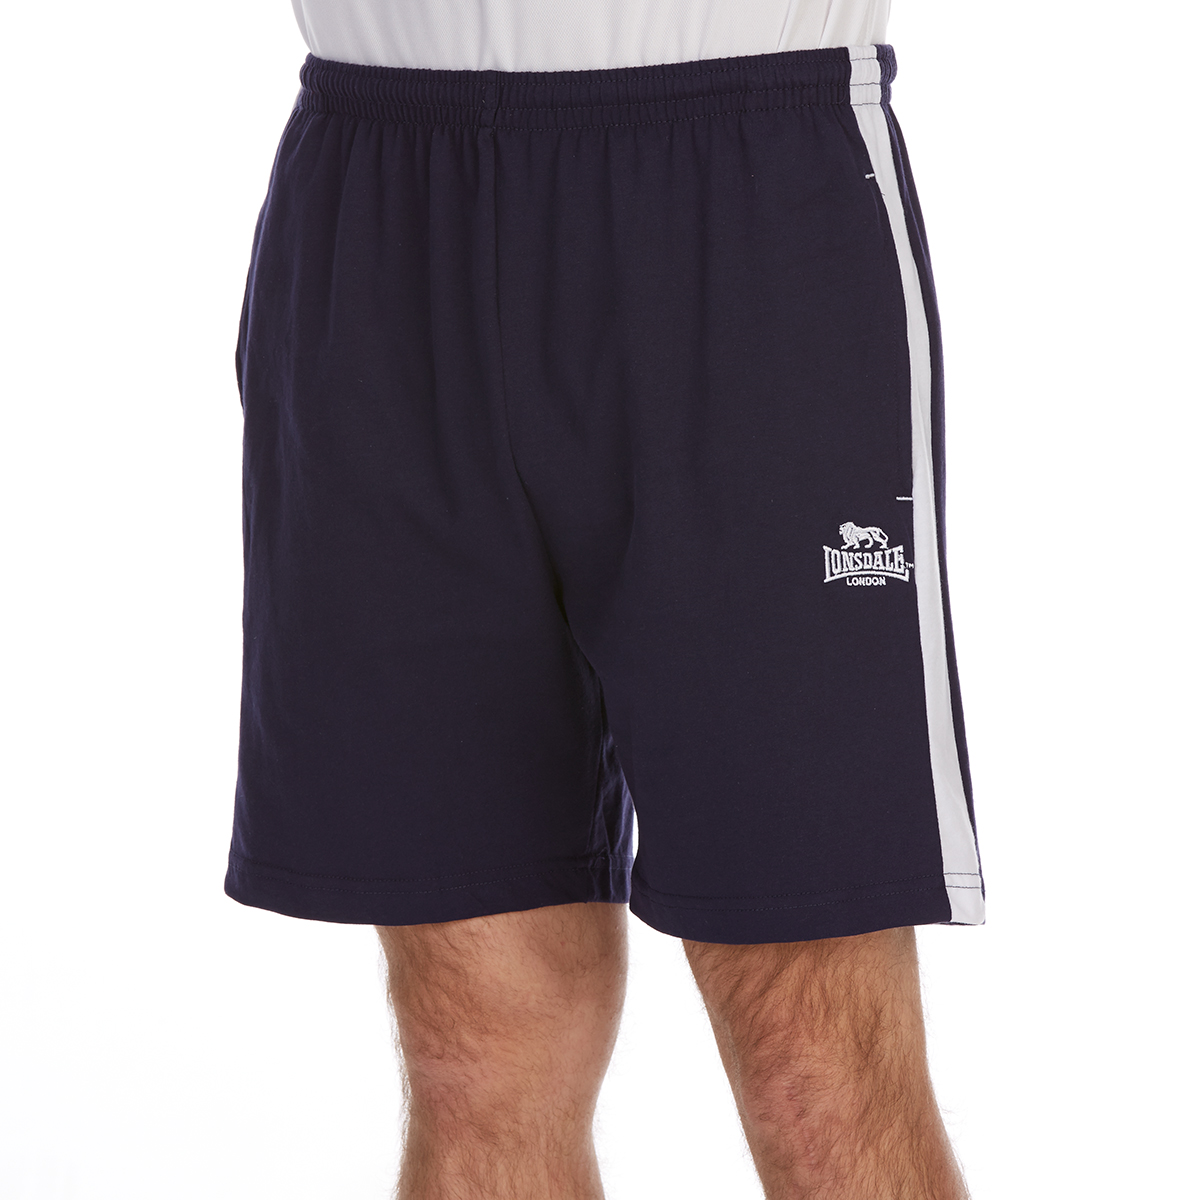 Lonsdale Men's Jersey Shorts - Blue, L